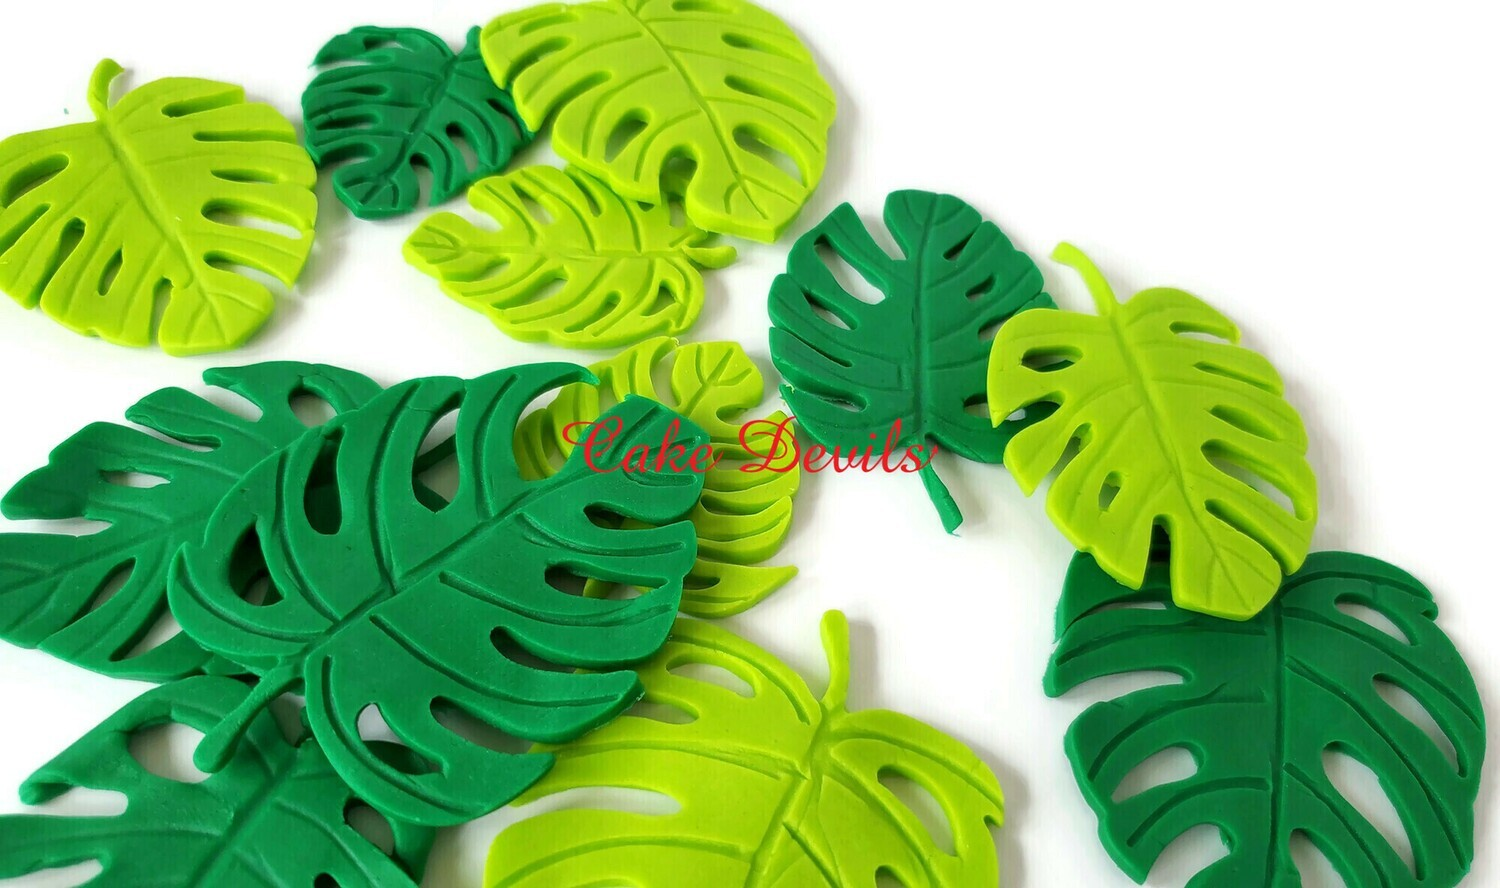 Fondant Palm Monstera Leaves Cake Toppers for a tropical or jungle cake